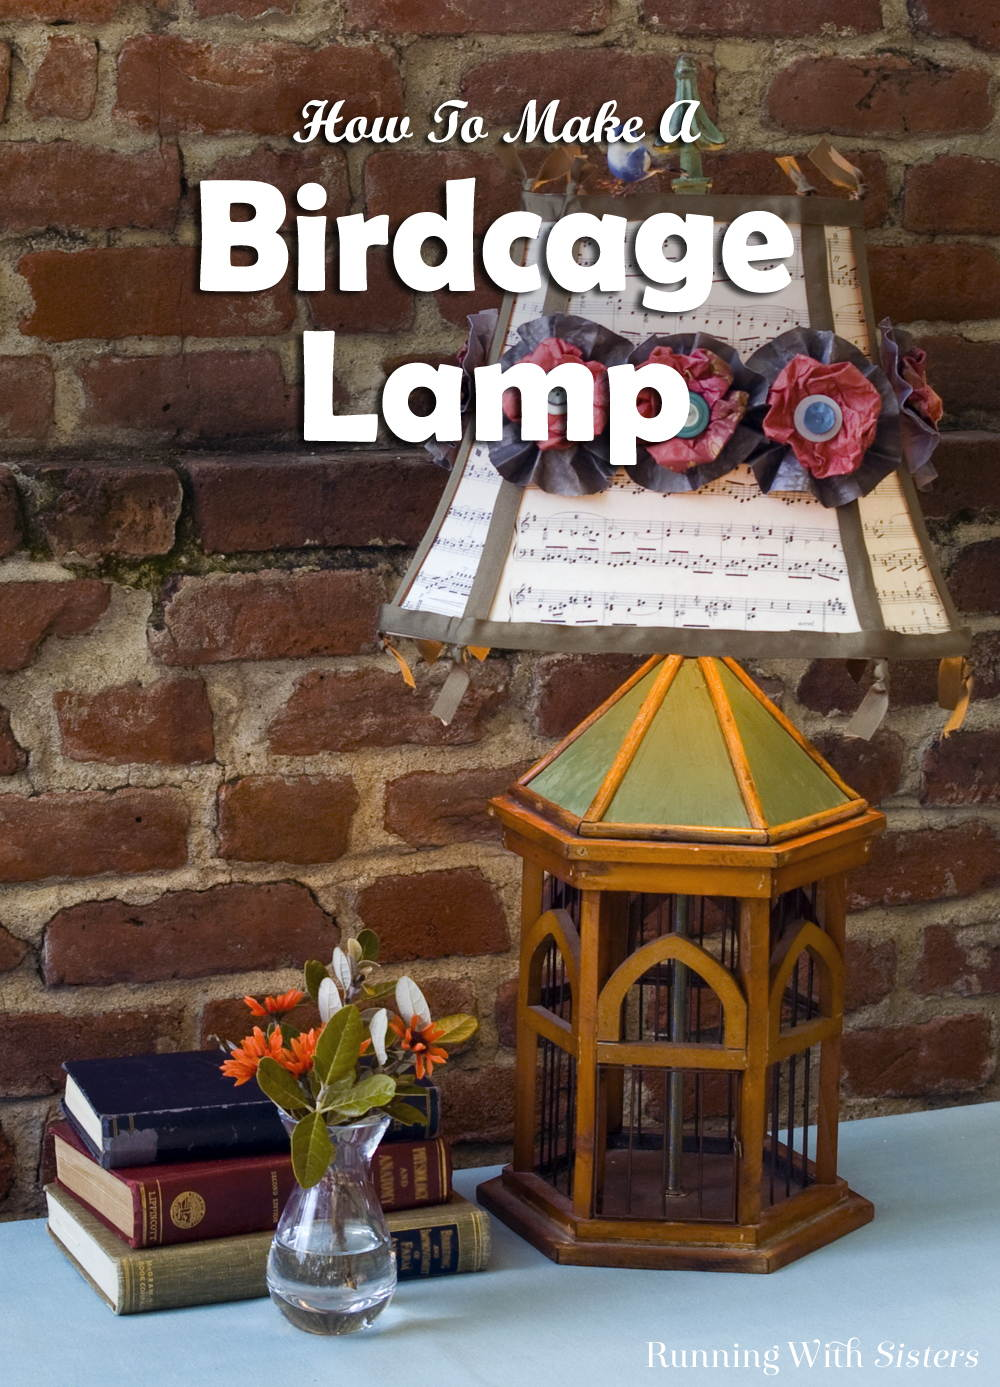 Learn how to use a lamp kit from the hardware store to turn a flea market birdcage into a real working birdcage lamp. Then embellish the shade with vintage